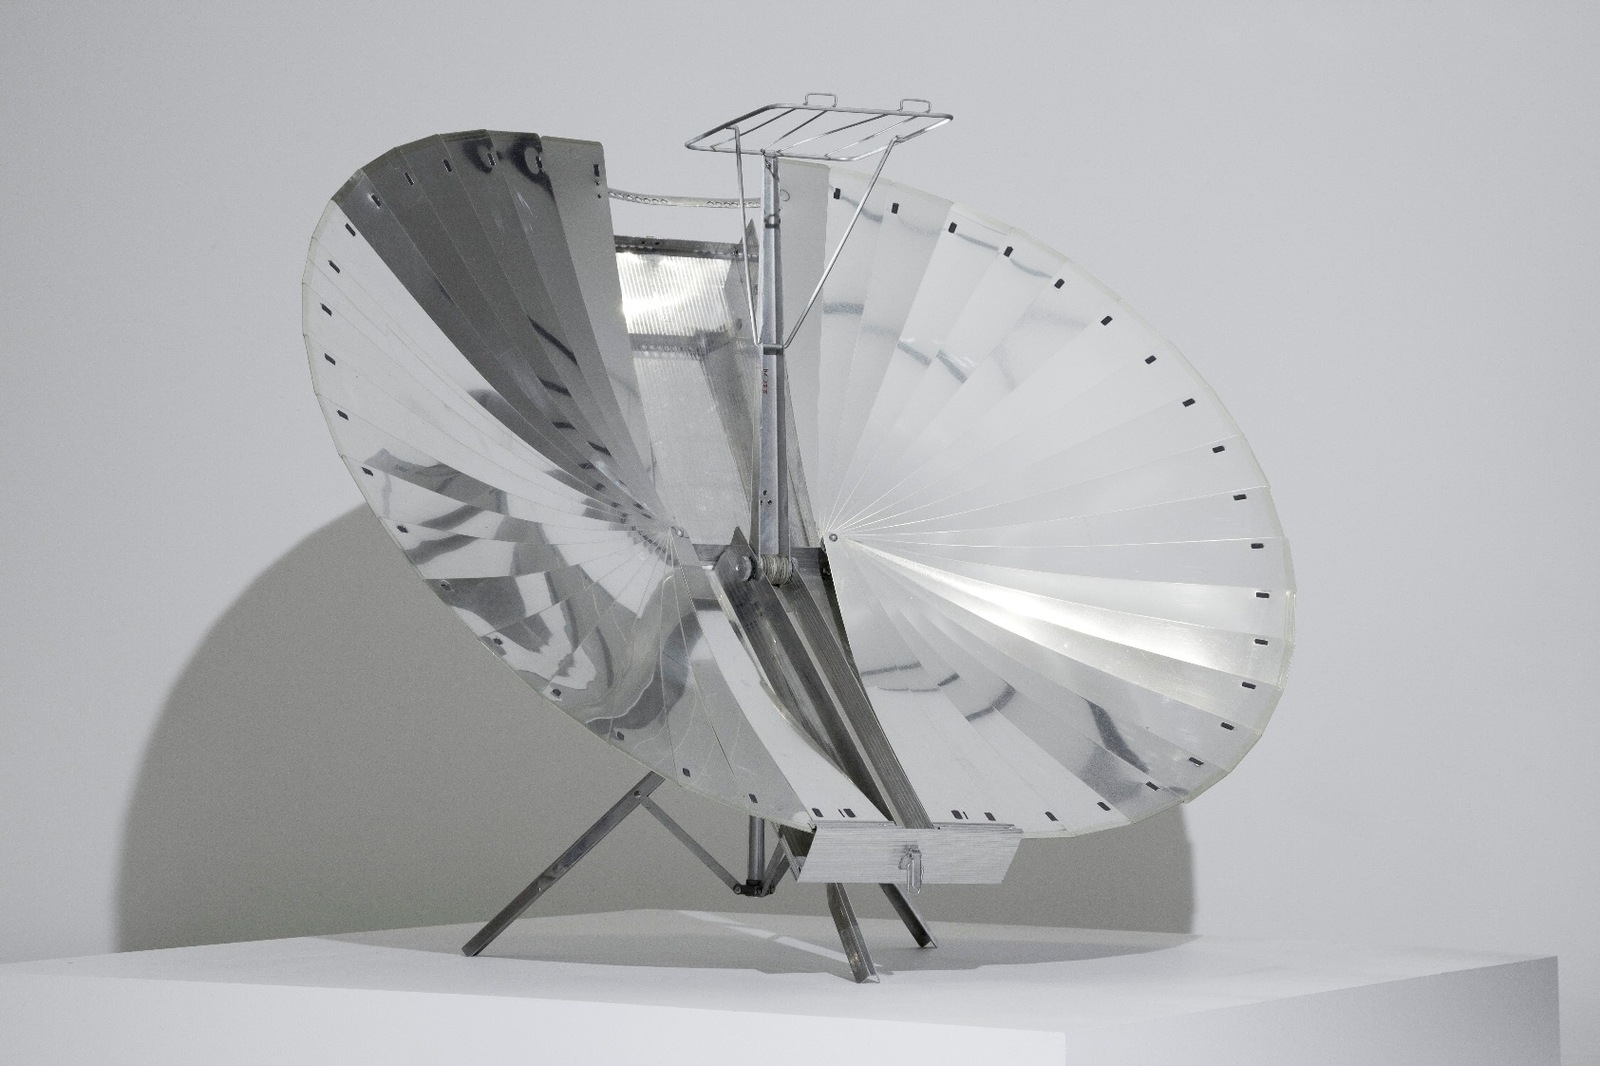 Solnar Tarcici Collapsible Solar Cooker. c.1970 image